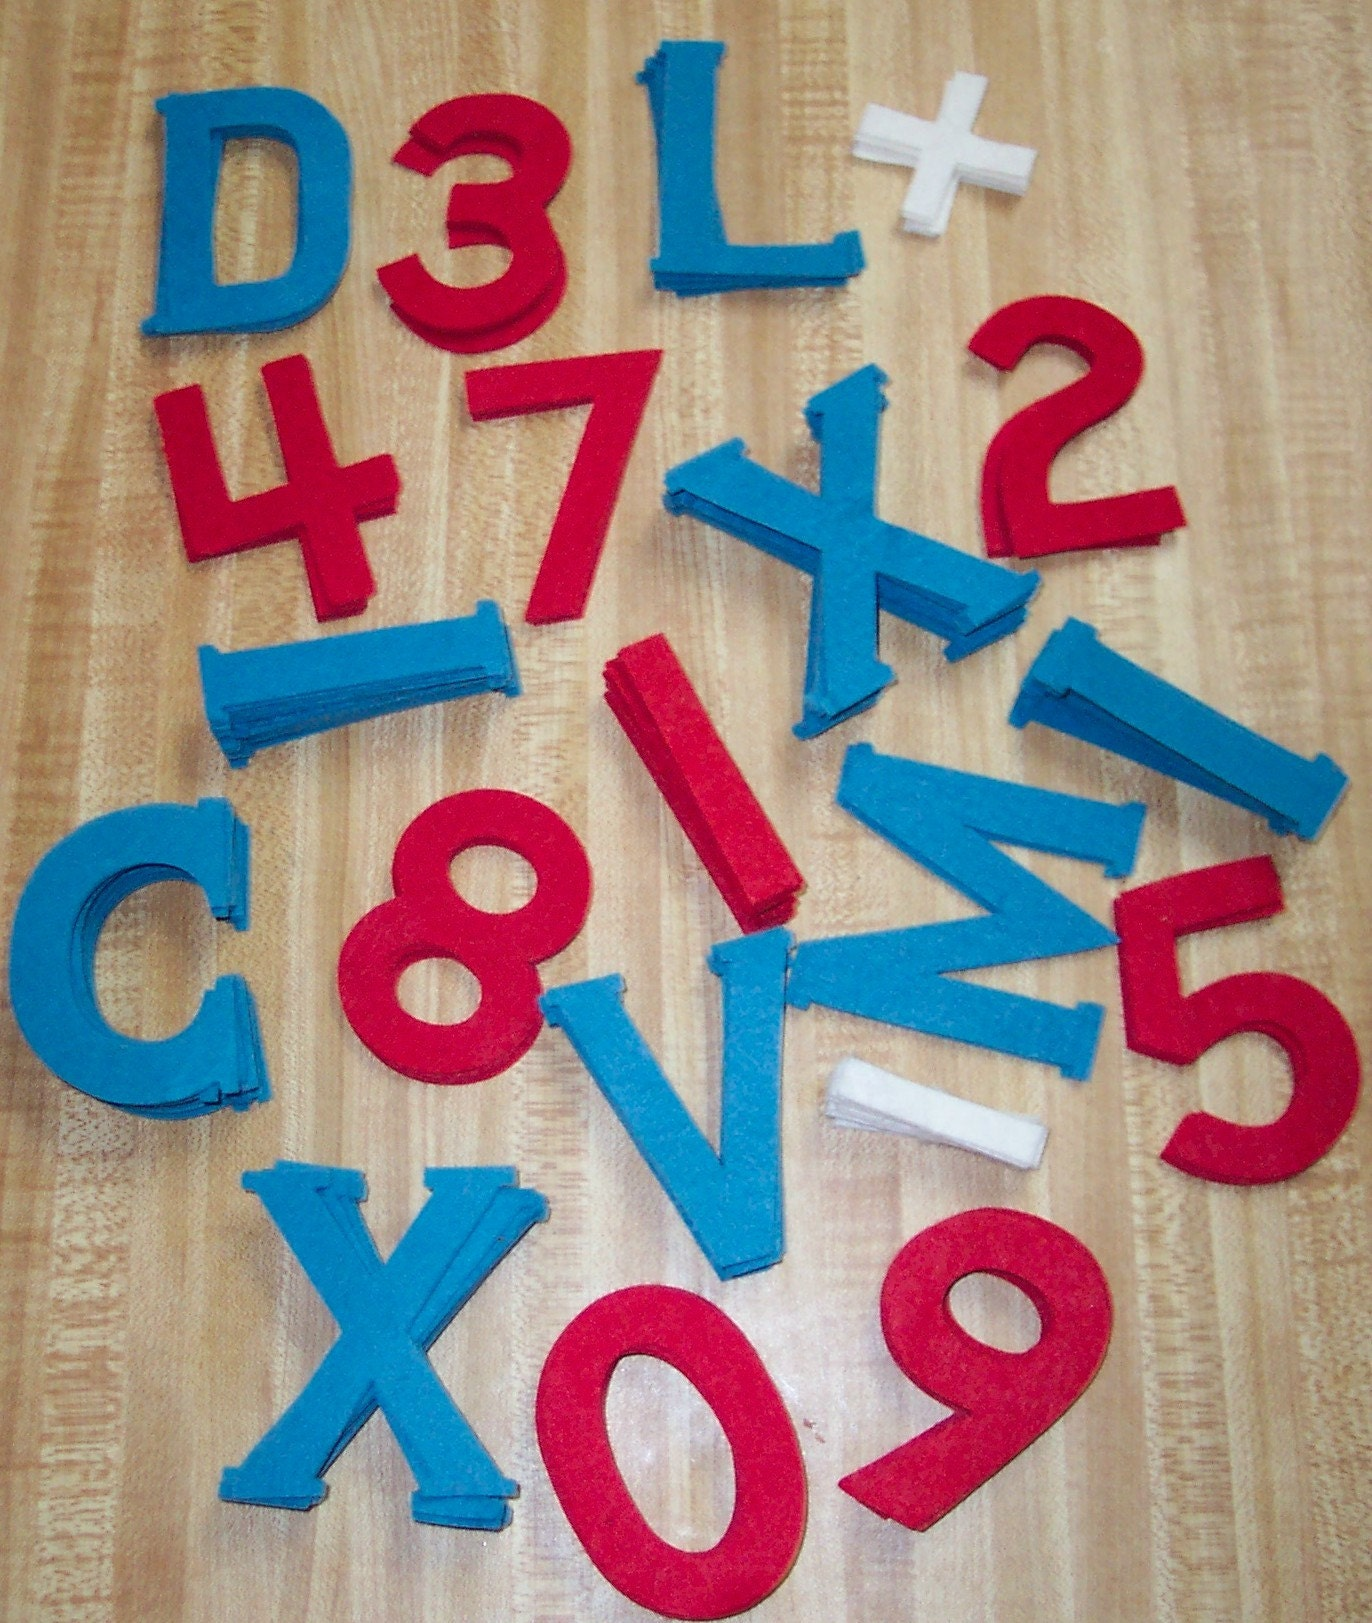 Vintage 60s flannel board felt letters and numbers free for Flannel board letters